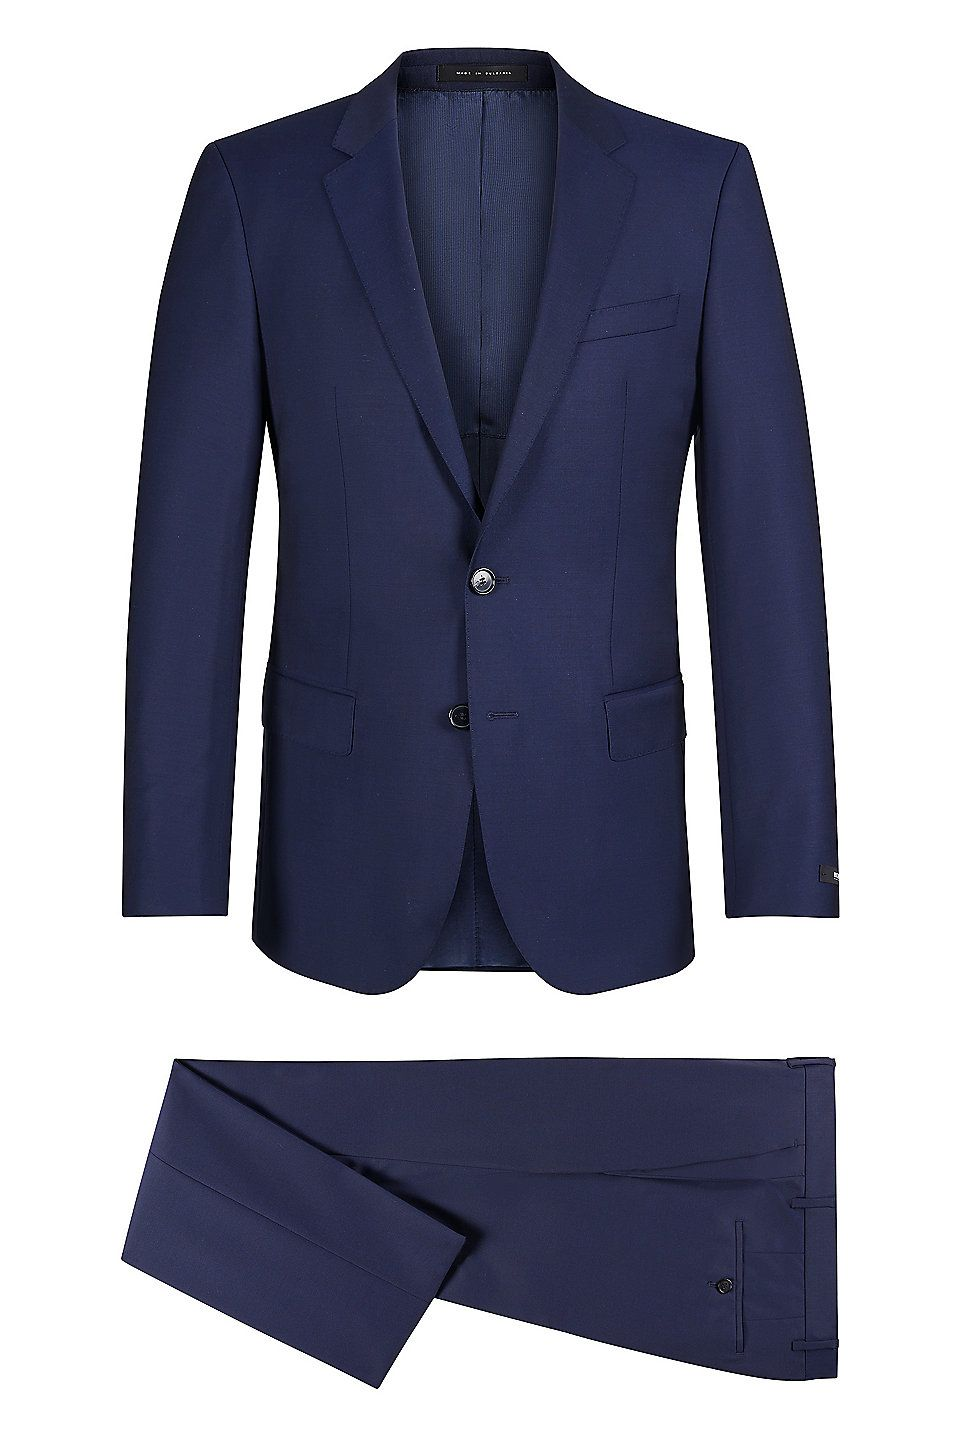 193466450 Italian Super 110 Virgin Wool Suit, Slim Fit | Huge/Genius Dark Blue from  BOSS for Men for $795.00 in the official HUGO BOSS Online Store free  shipping